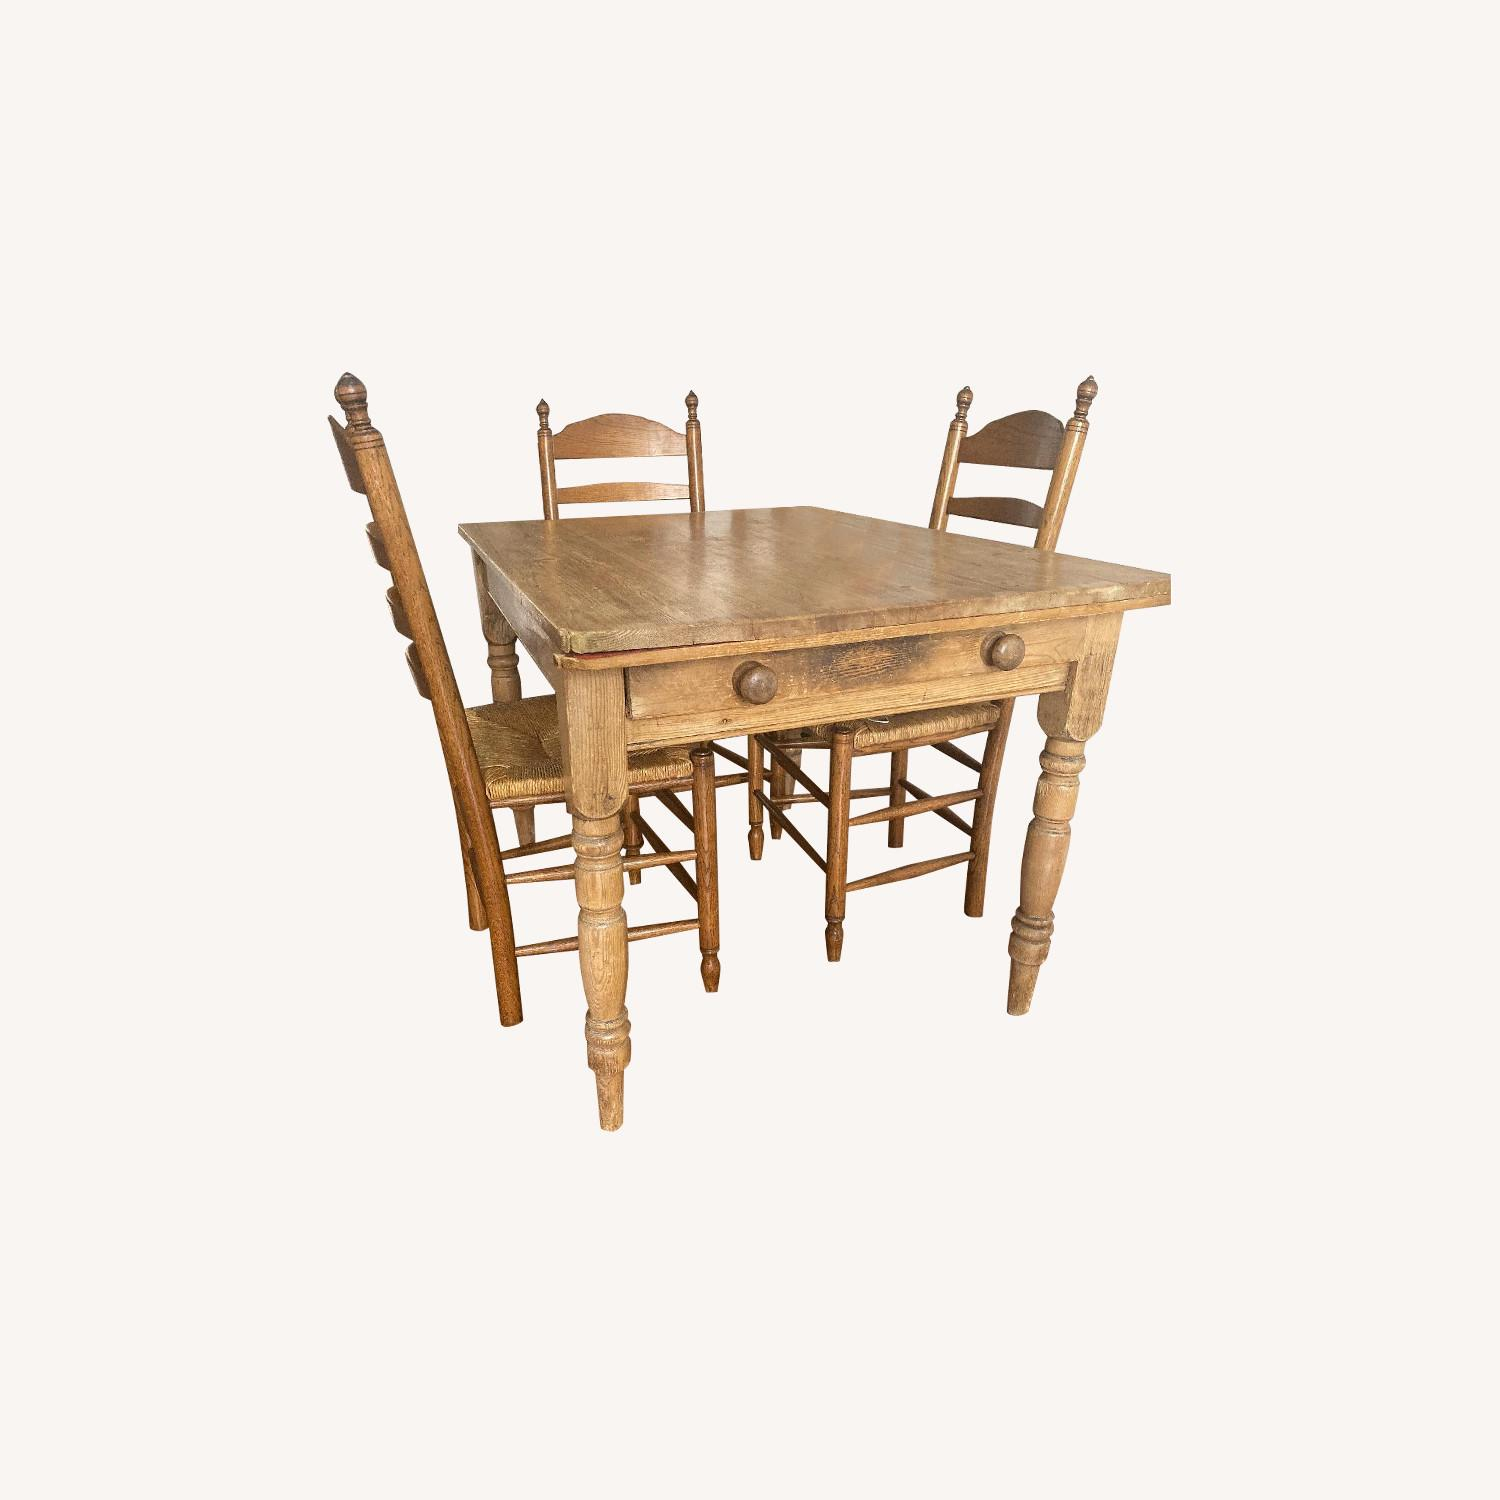 Antique Oak Wooden Dining Table w/ 4 Chairs - image-0